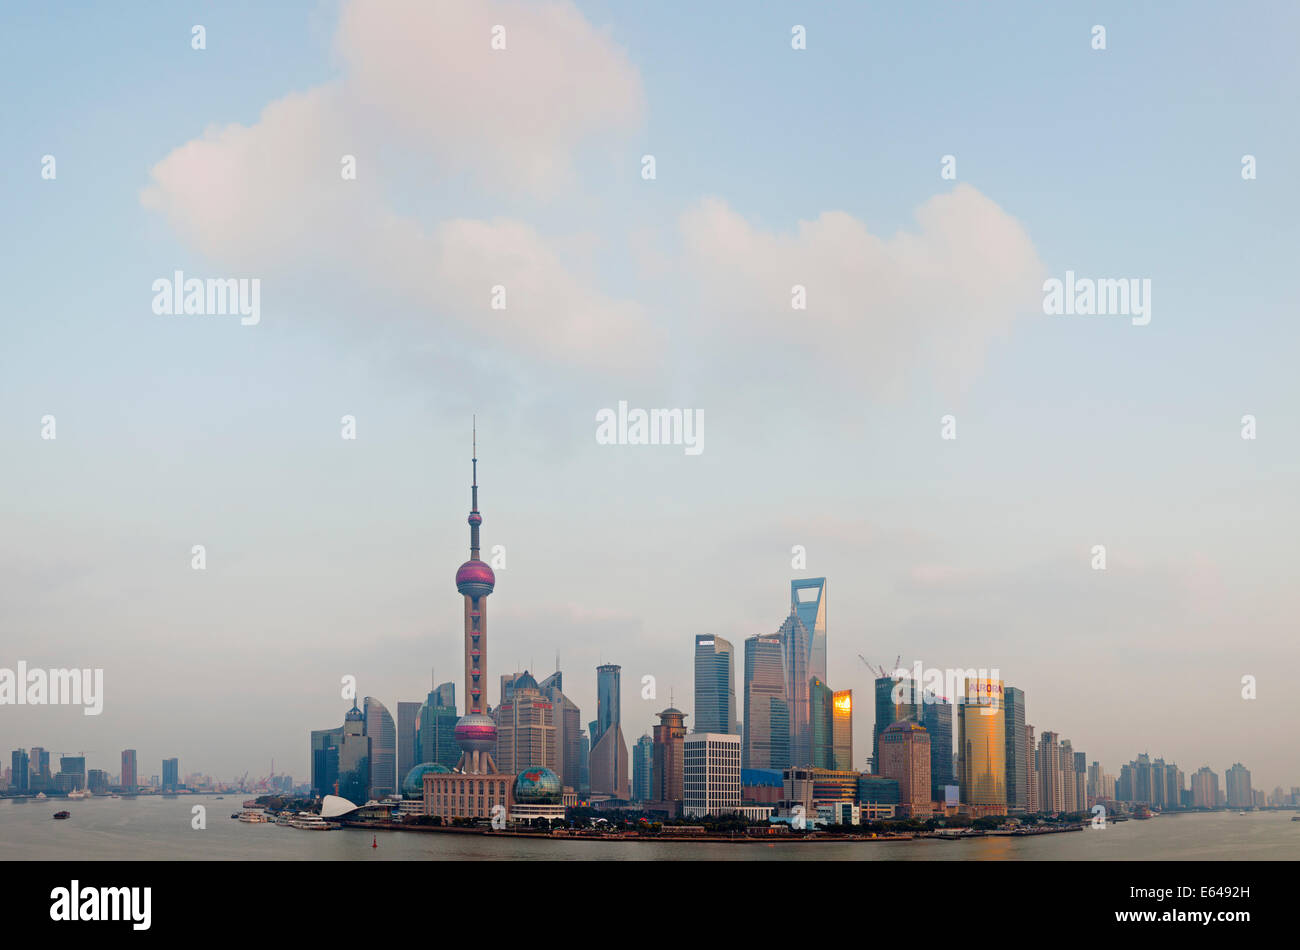 L'horizon de Pudong et la rivière Huangpu, Shanghai, Chine Photo Stock